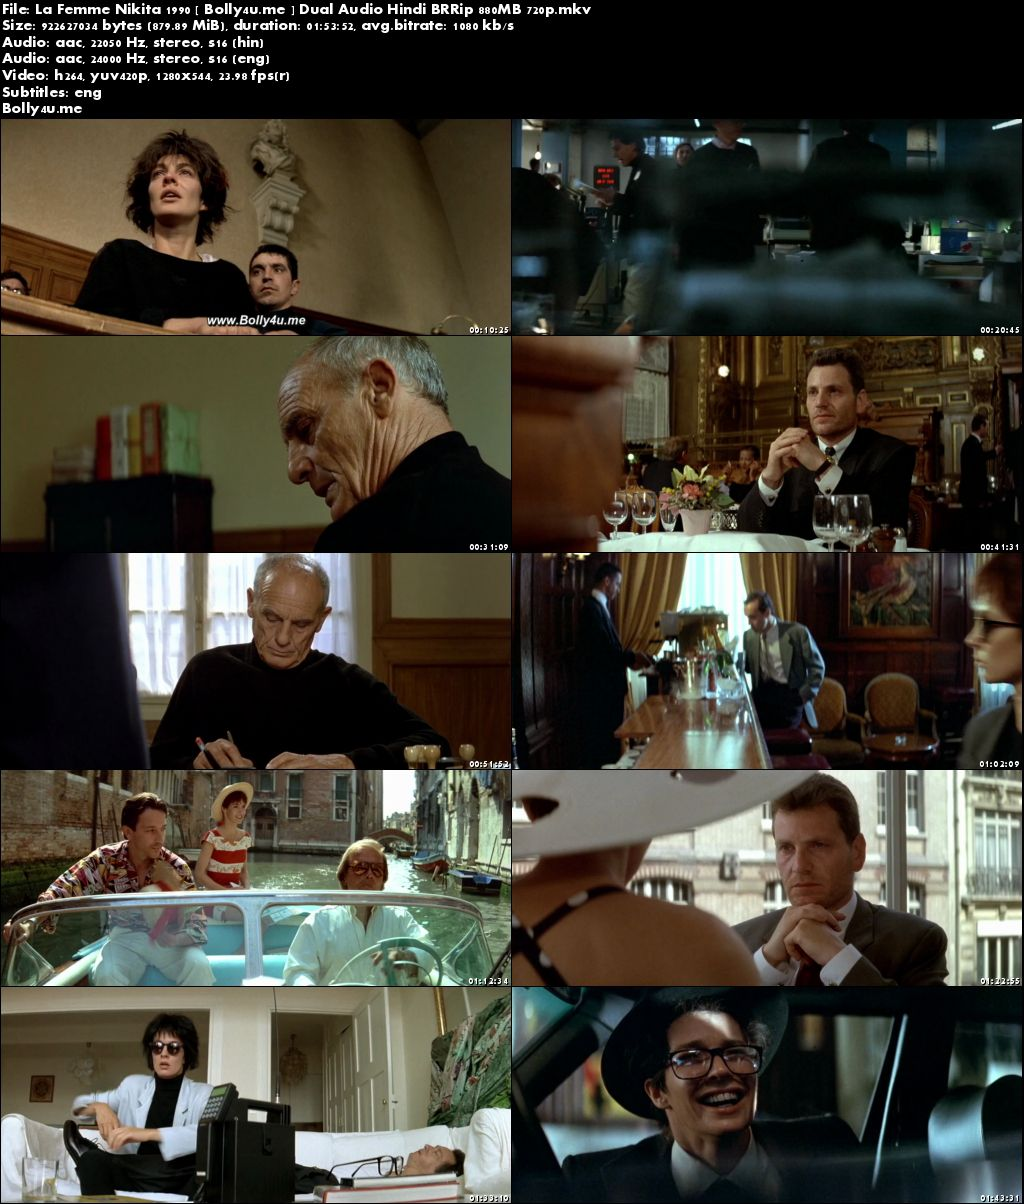 La Femme Nikita 1990 BRRip 850MB Hindi Dual Audio 720p ESub Download